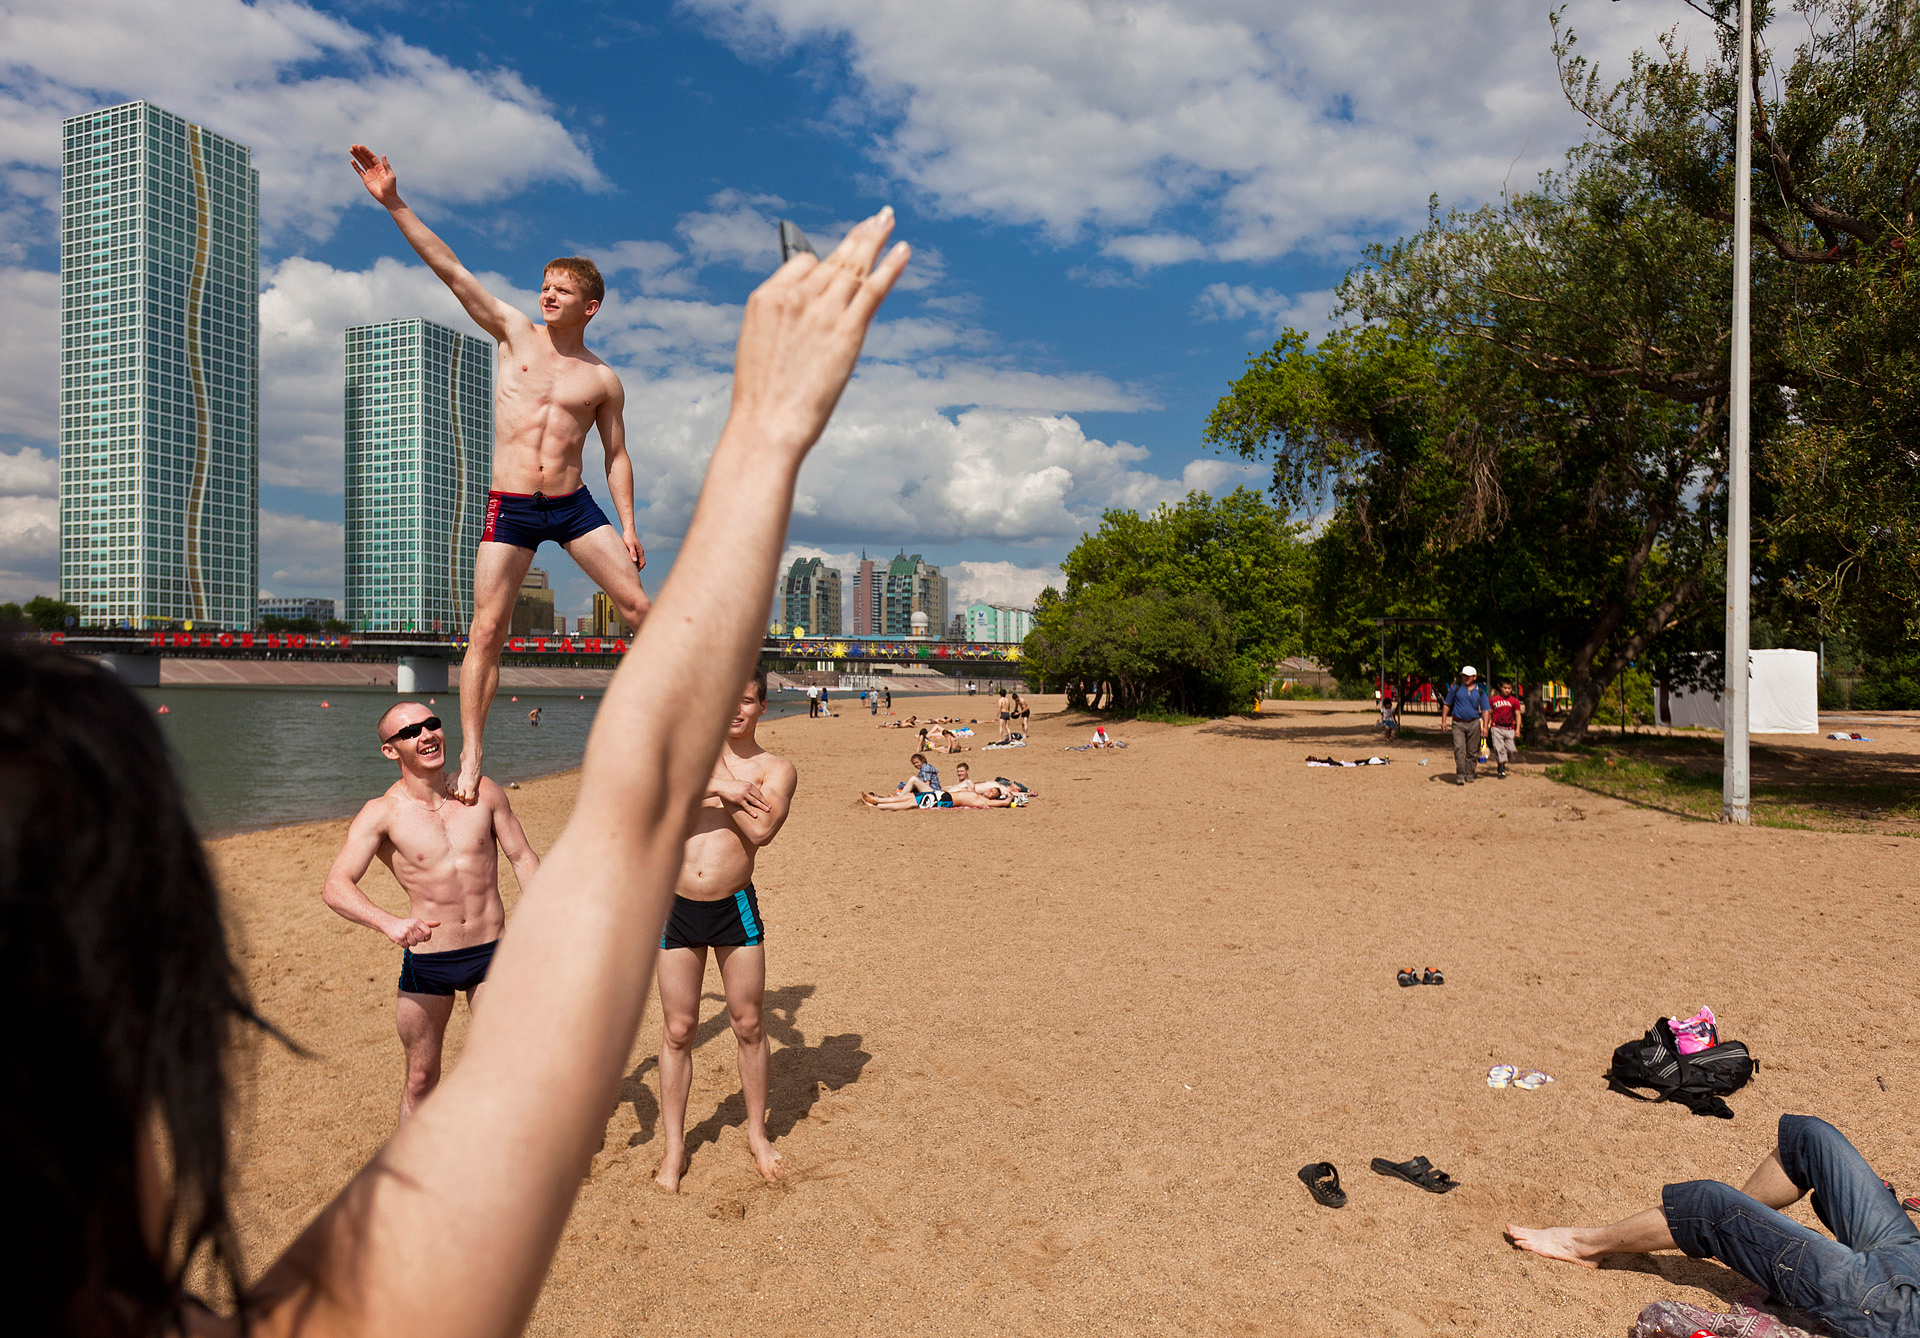 The French Riviera it isn't, but Astana makes the most of its brief summer, when young men gather at the Esil River to flex their muscles before appreciative members of the opposite sex.  Astana, Kazakhstan